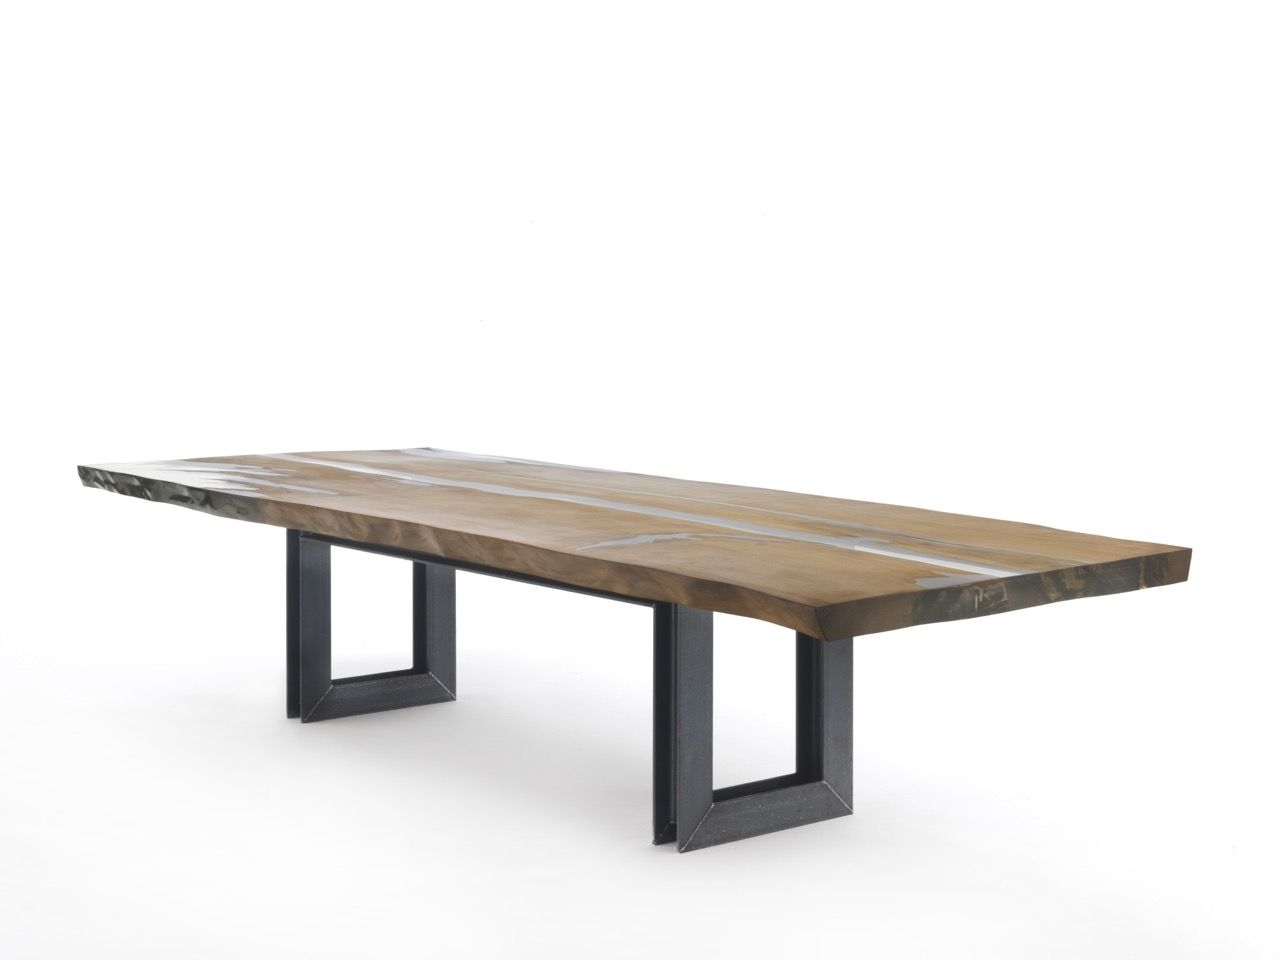 RIVA1920 Kauri Beam table